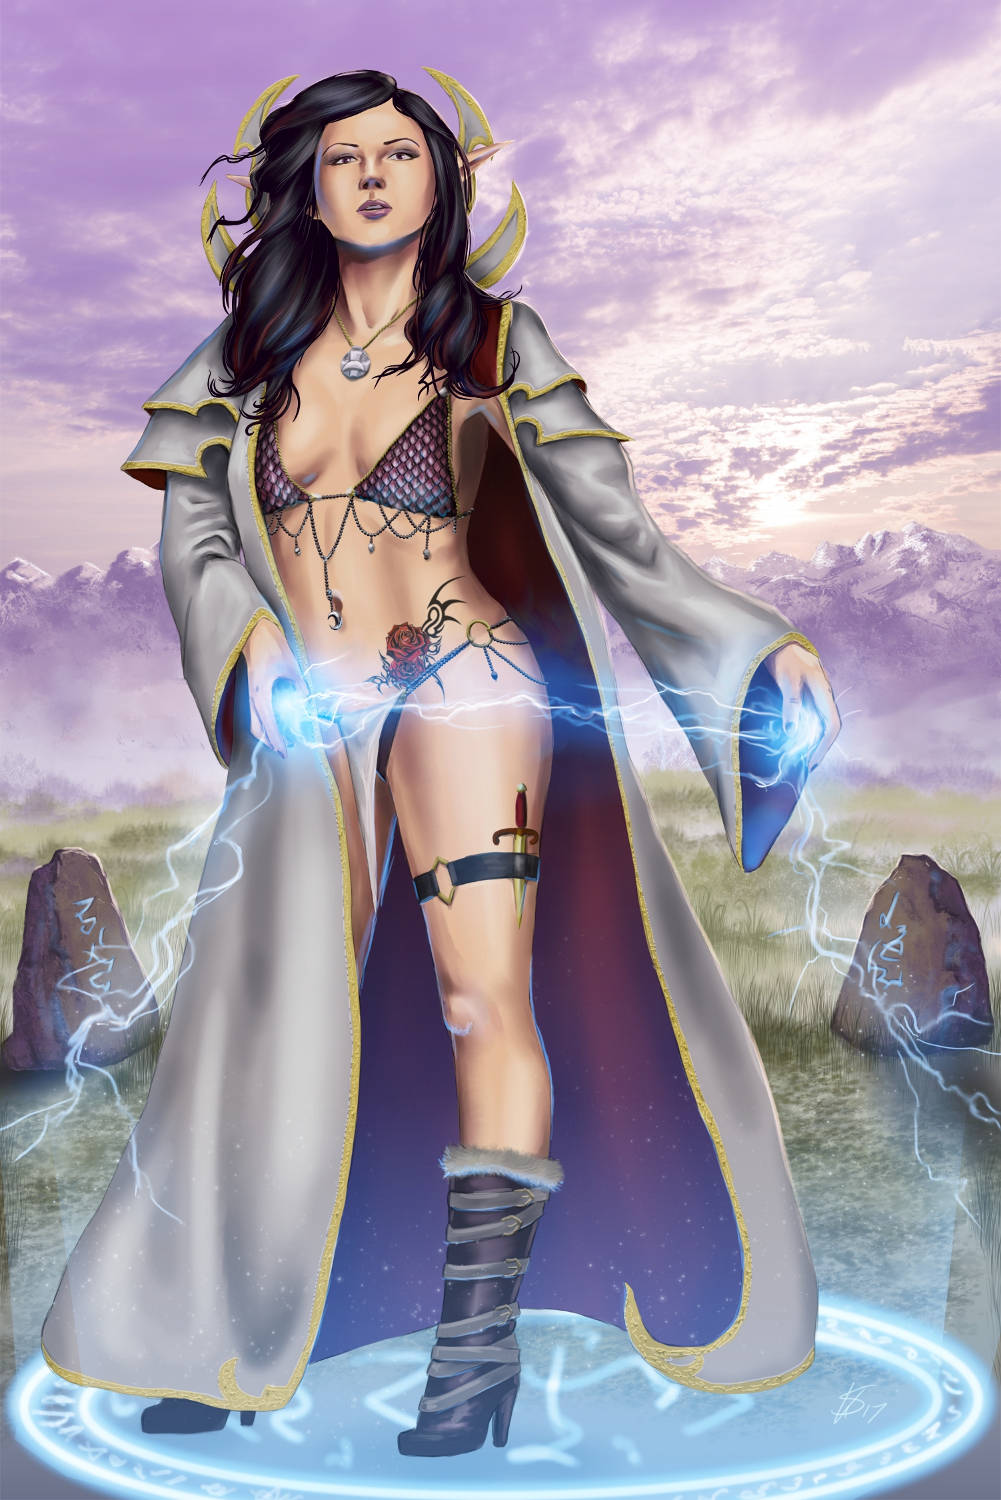 The Mage by Dinoforce